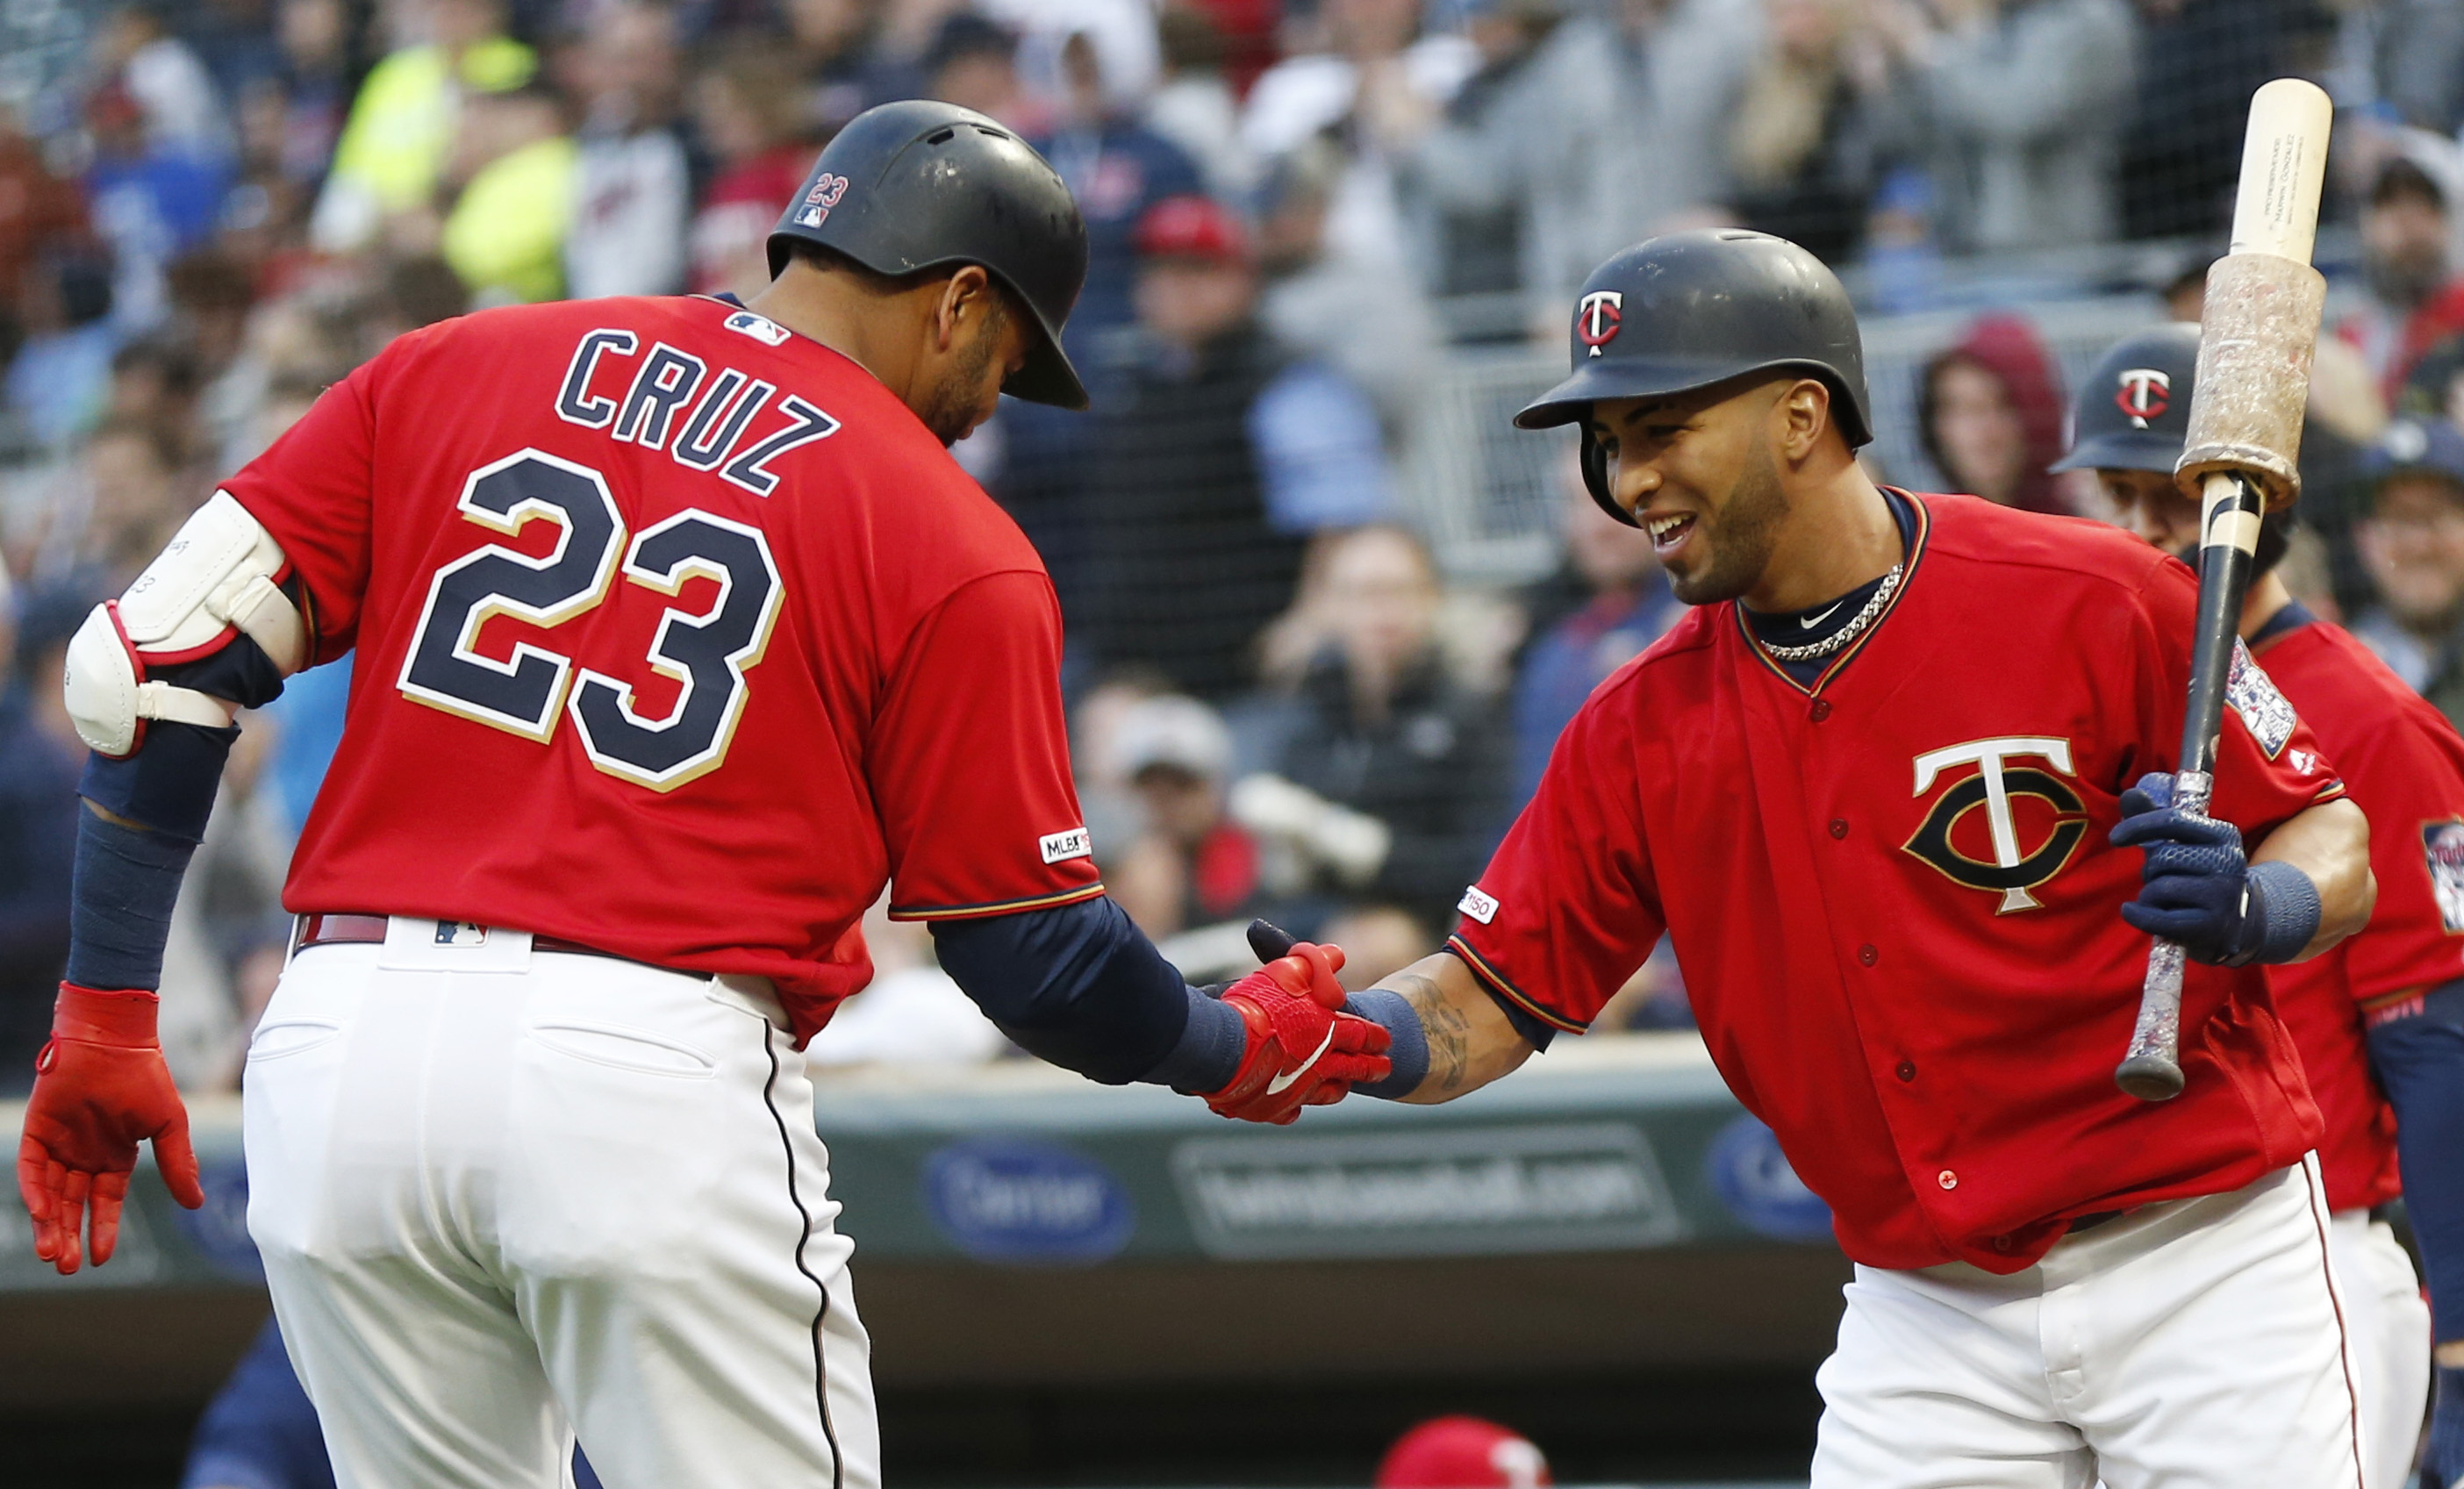 Cruz hit 2 of Twins' 5 homers in 6-1 win over Orioles